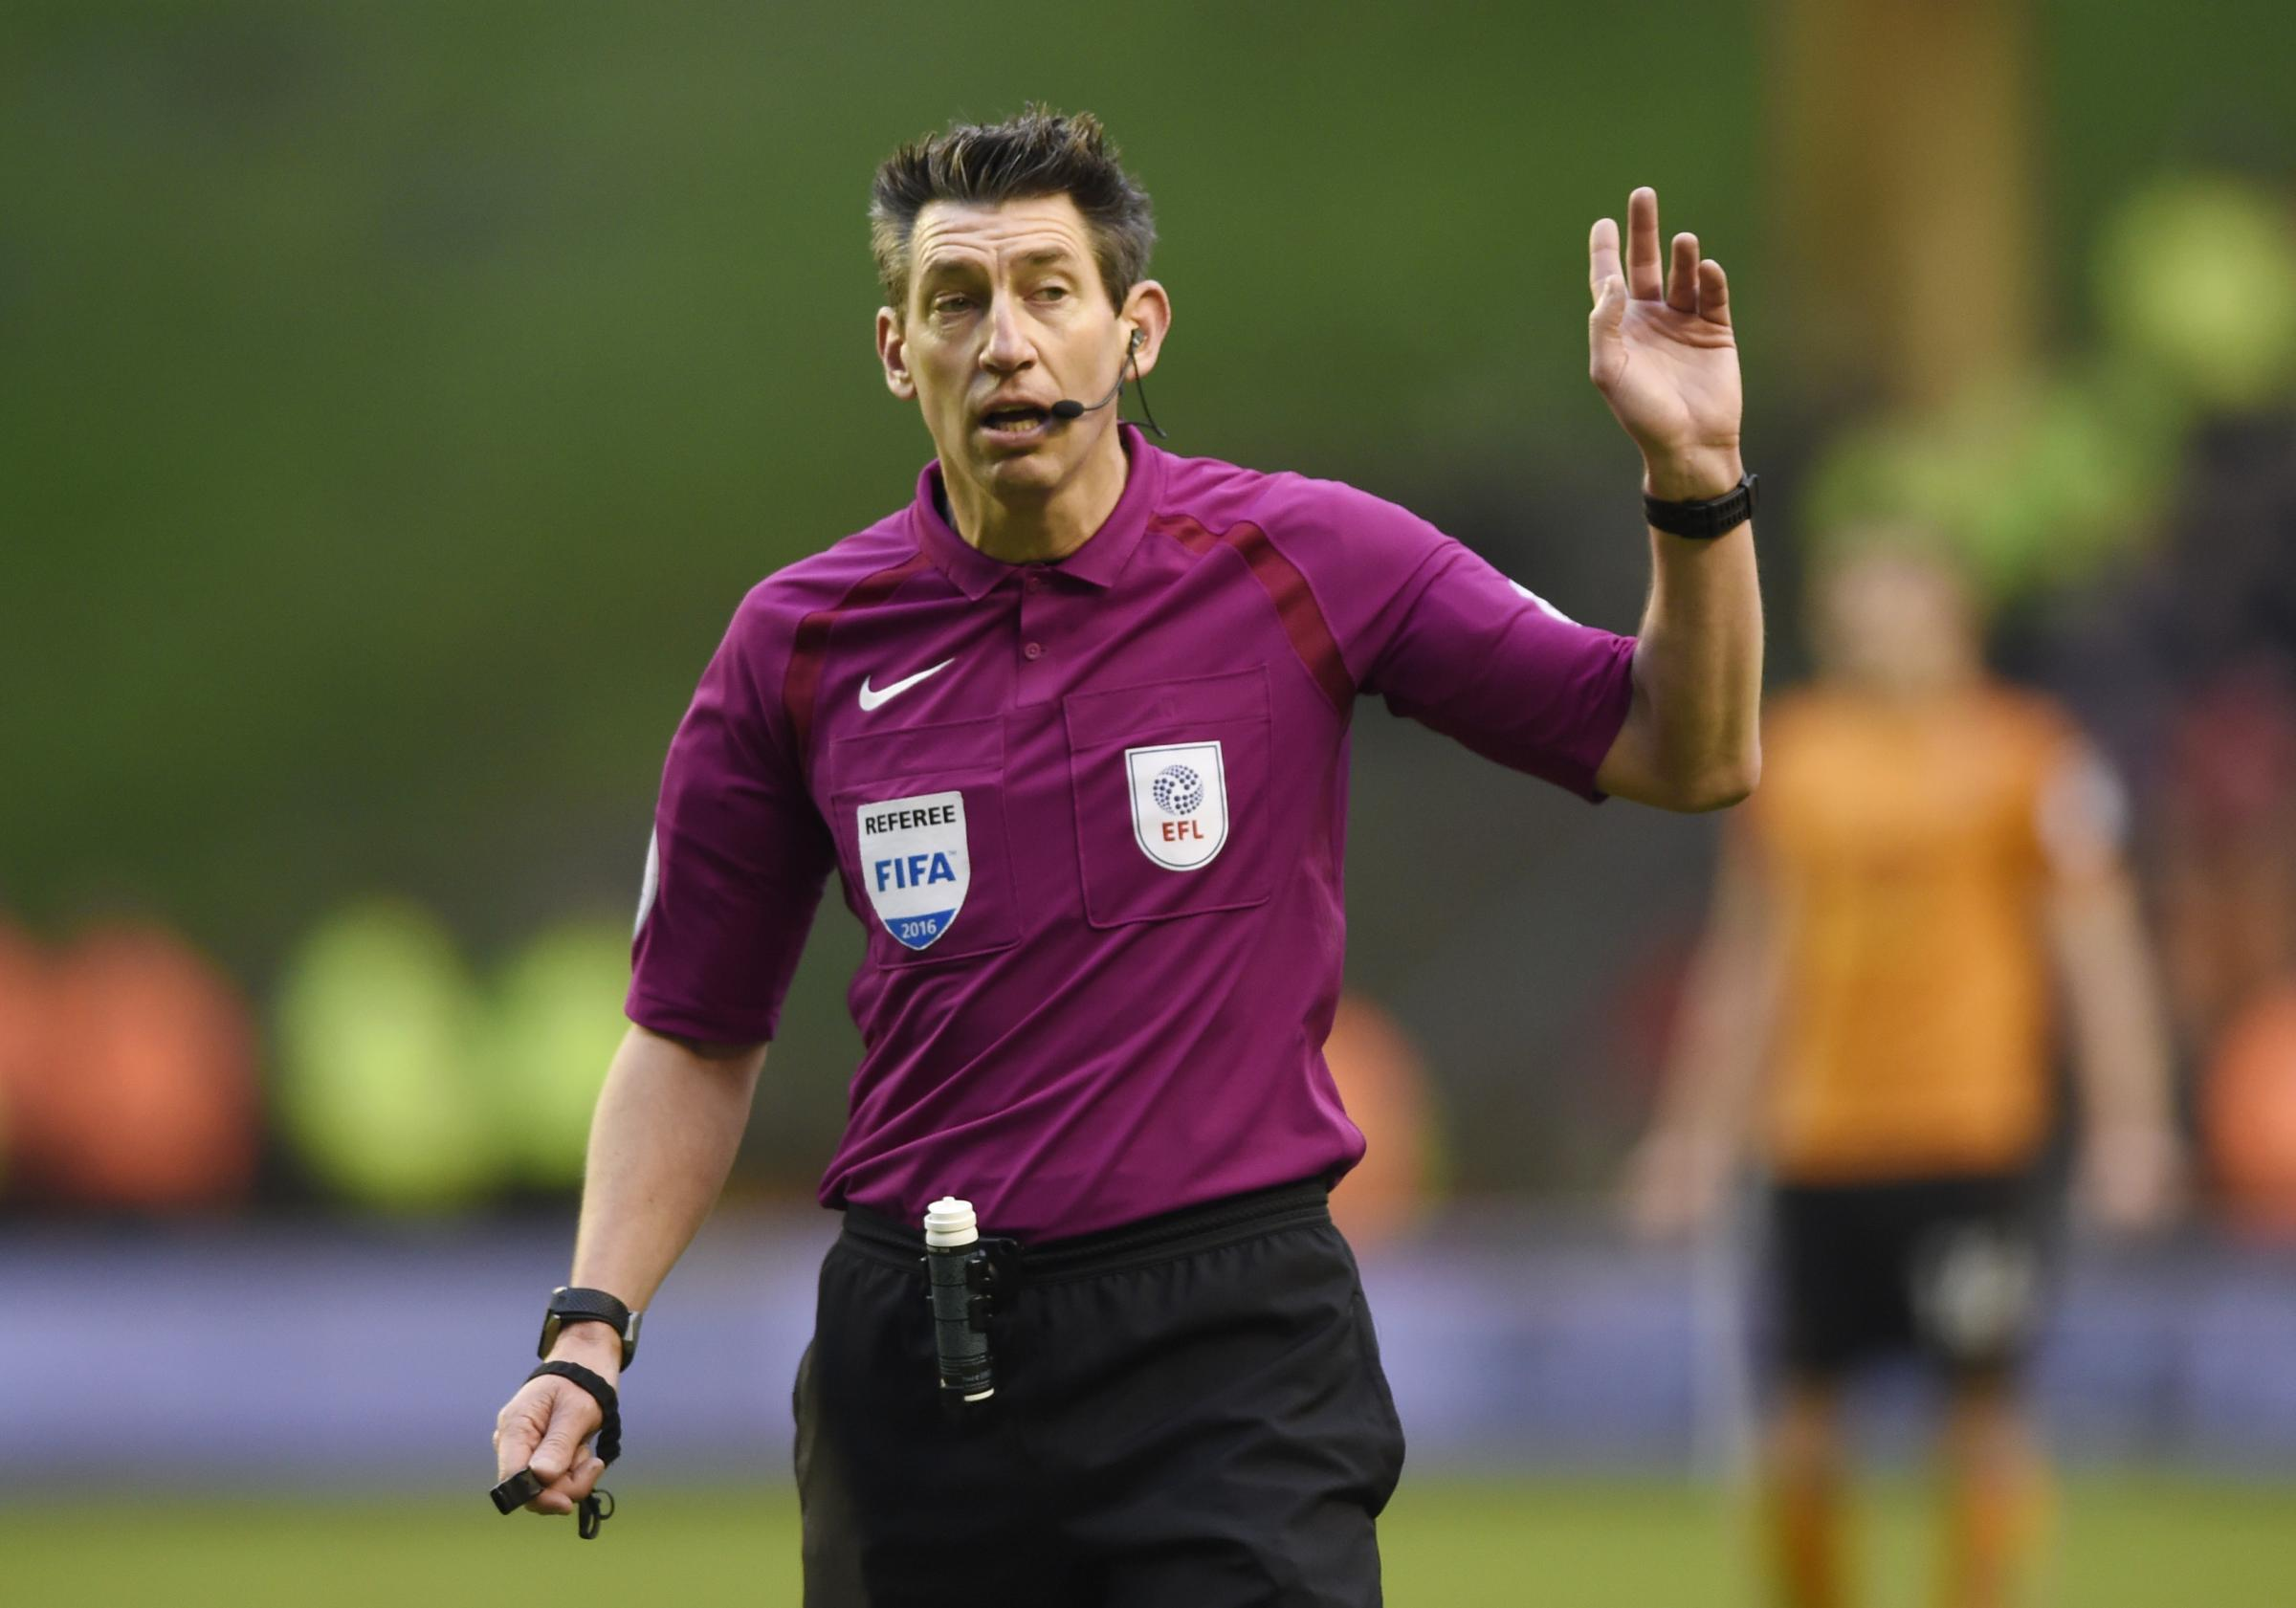 Watford have never lost in the Premier League with Lee Probert as referee. Picture: Action Images